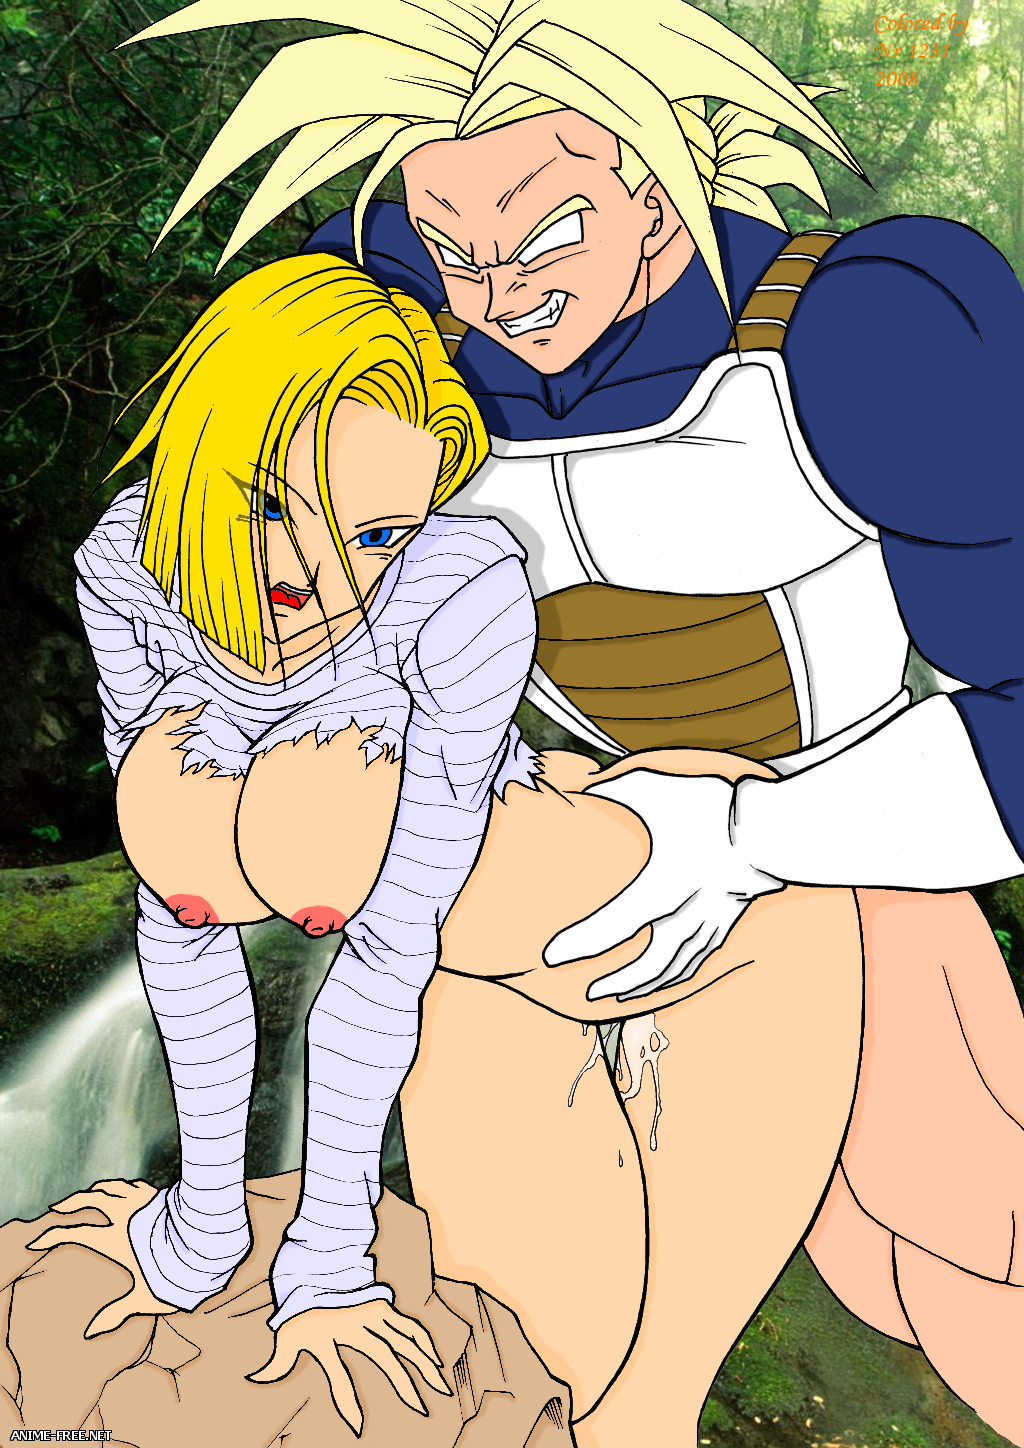 Dragon ball z porn gallery smut breasts